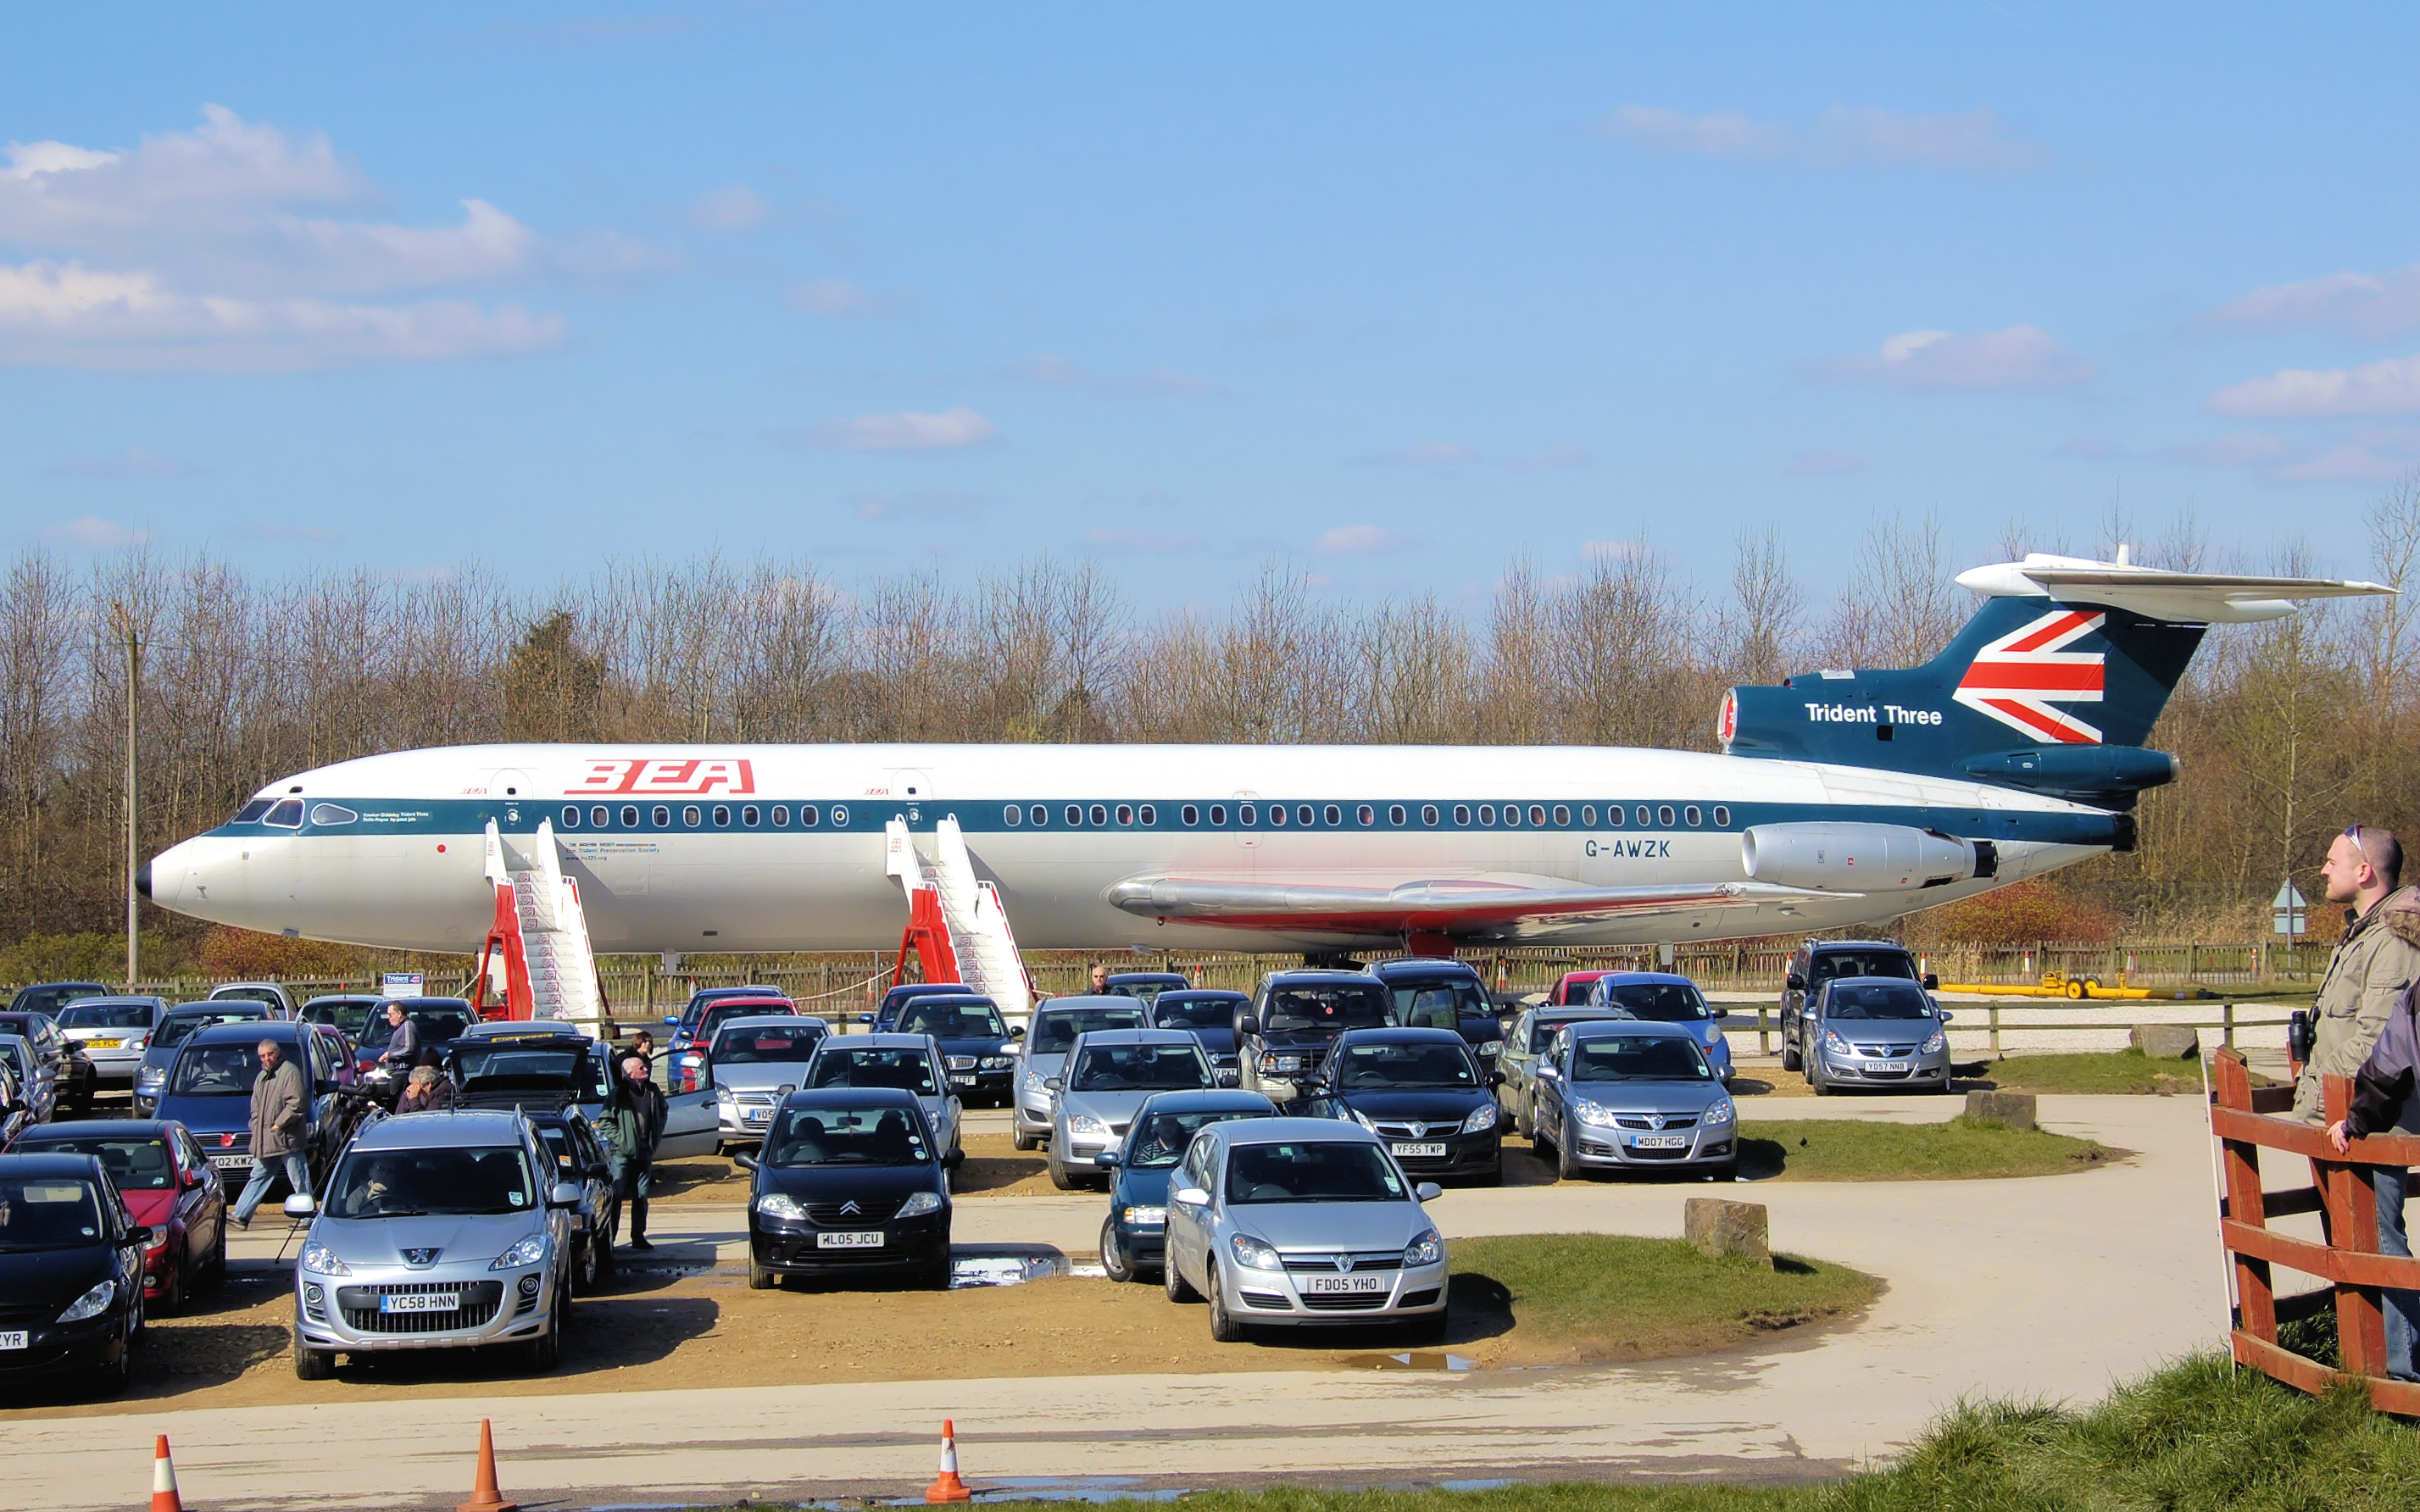 Car Parked On Airport Runway